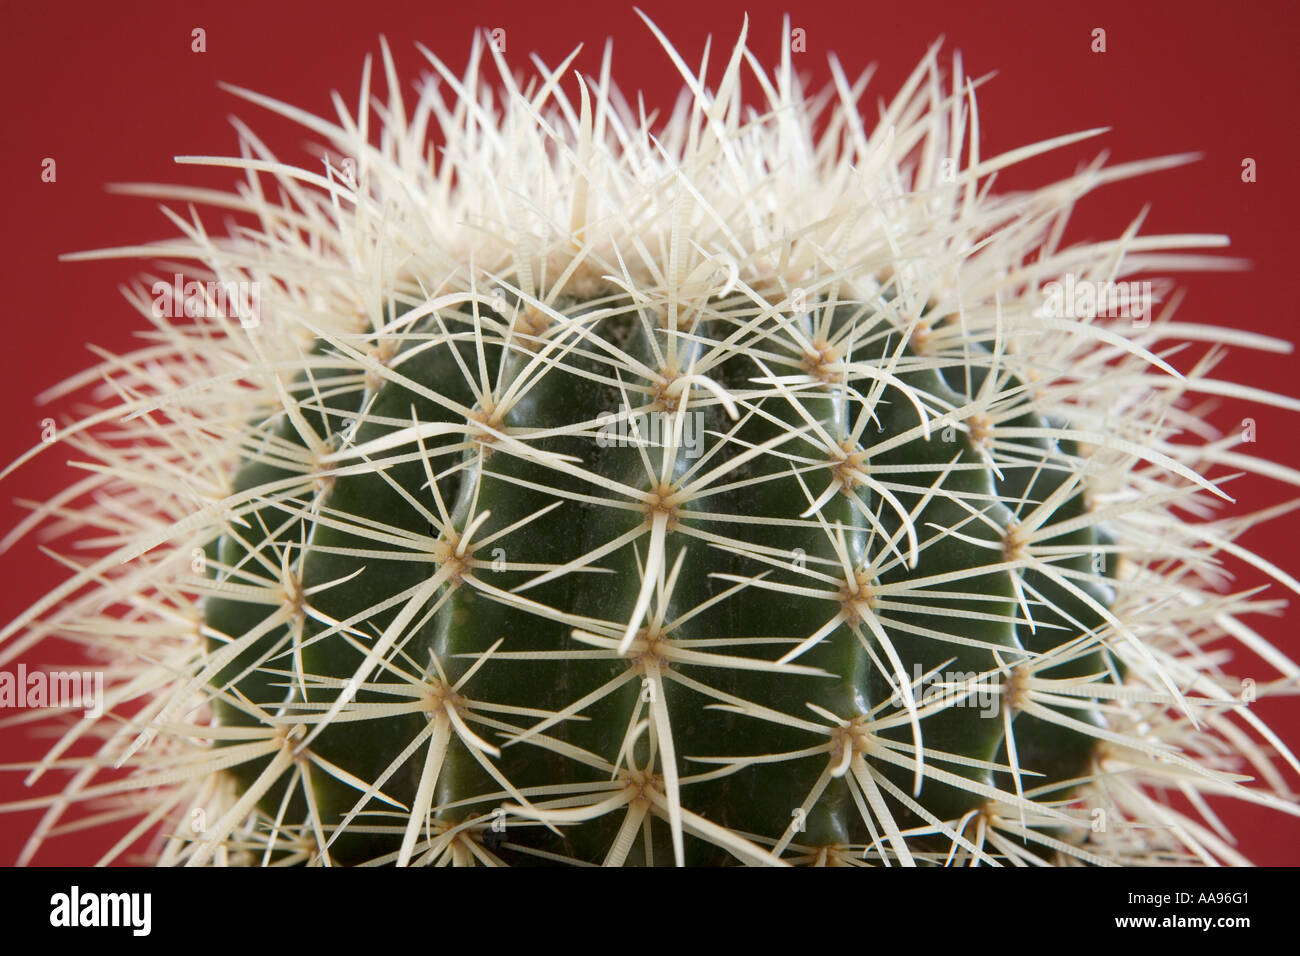 Cactus, close-up, against red background Stock Photo